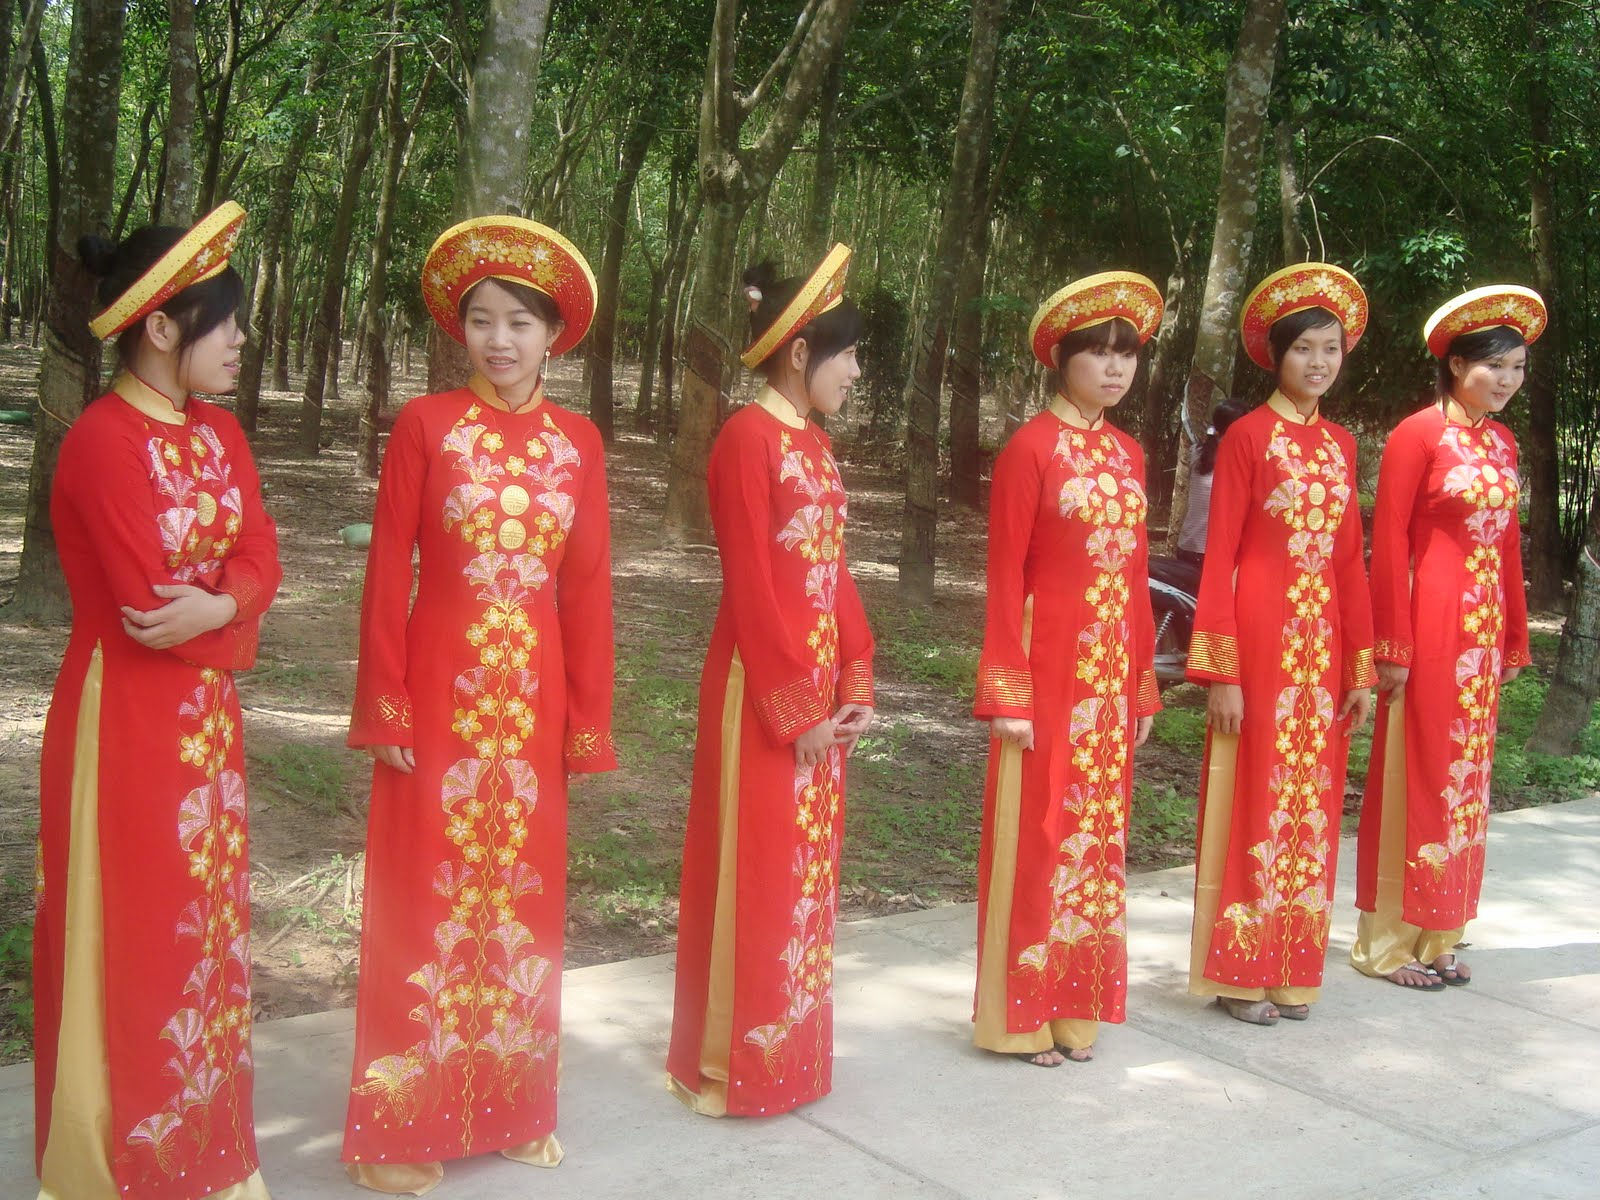 viet se dress ao dai atilde 129 o d atilde nbsp i vietnam national costume girl in vietnam dress ao dai